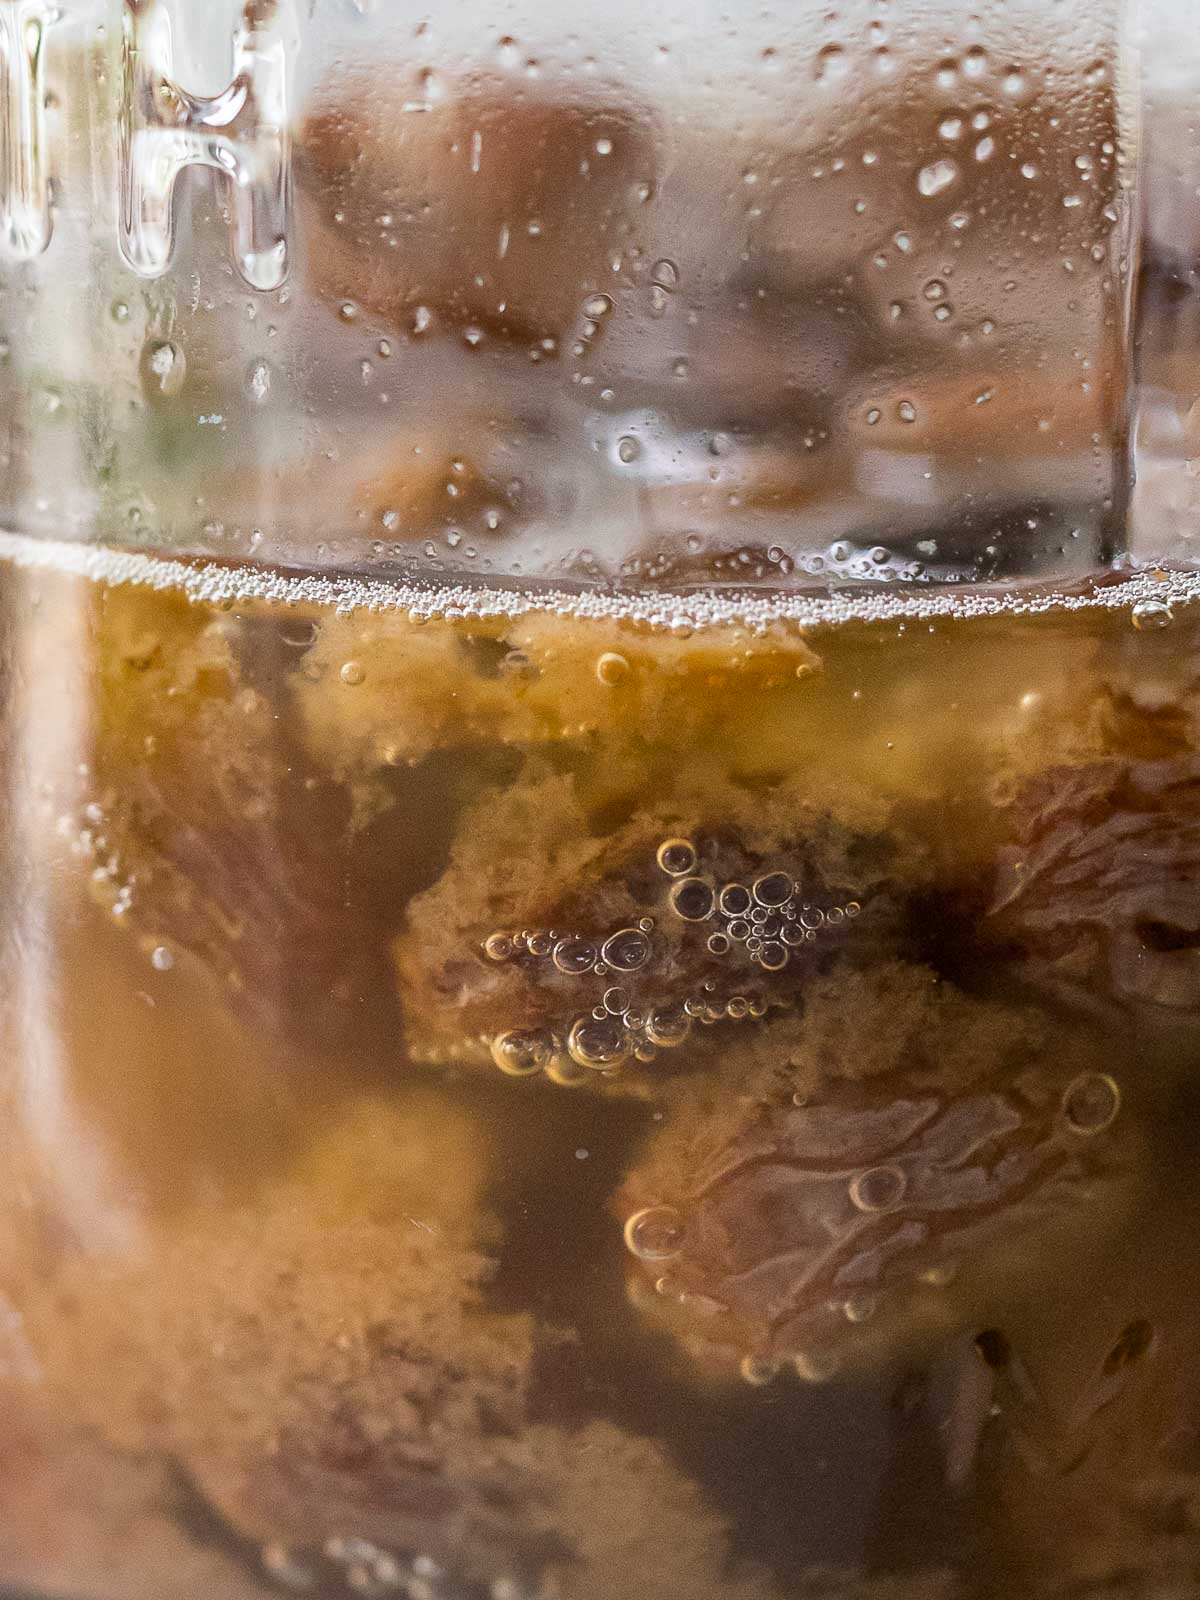 close up of raisin yeast water fermenting in a glass jar